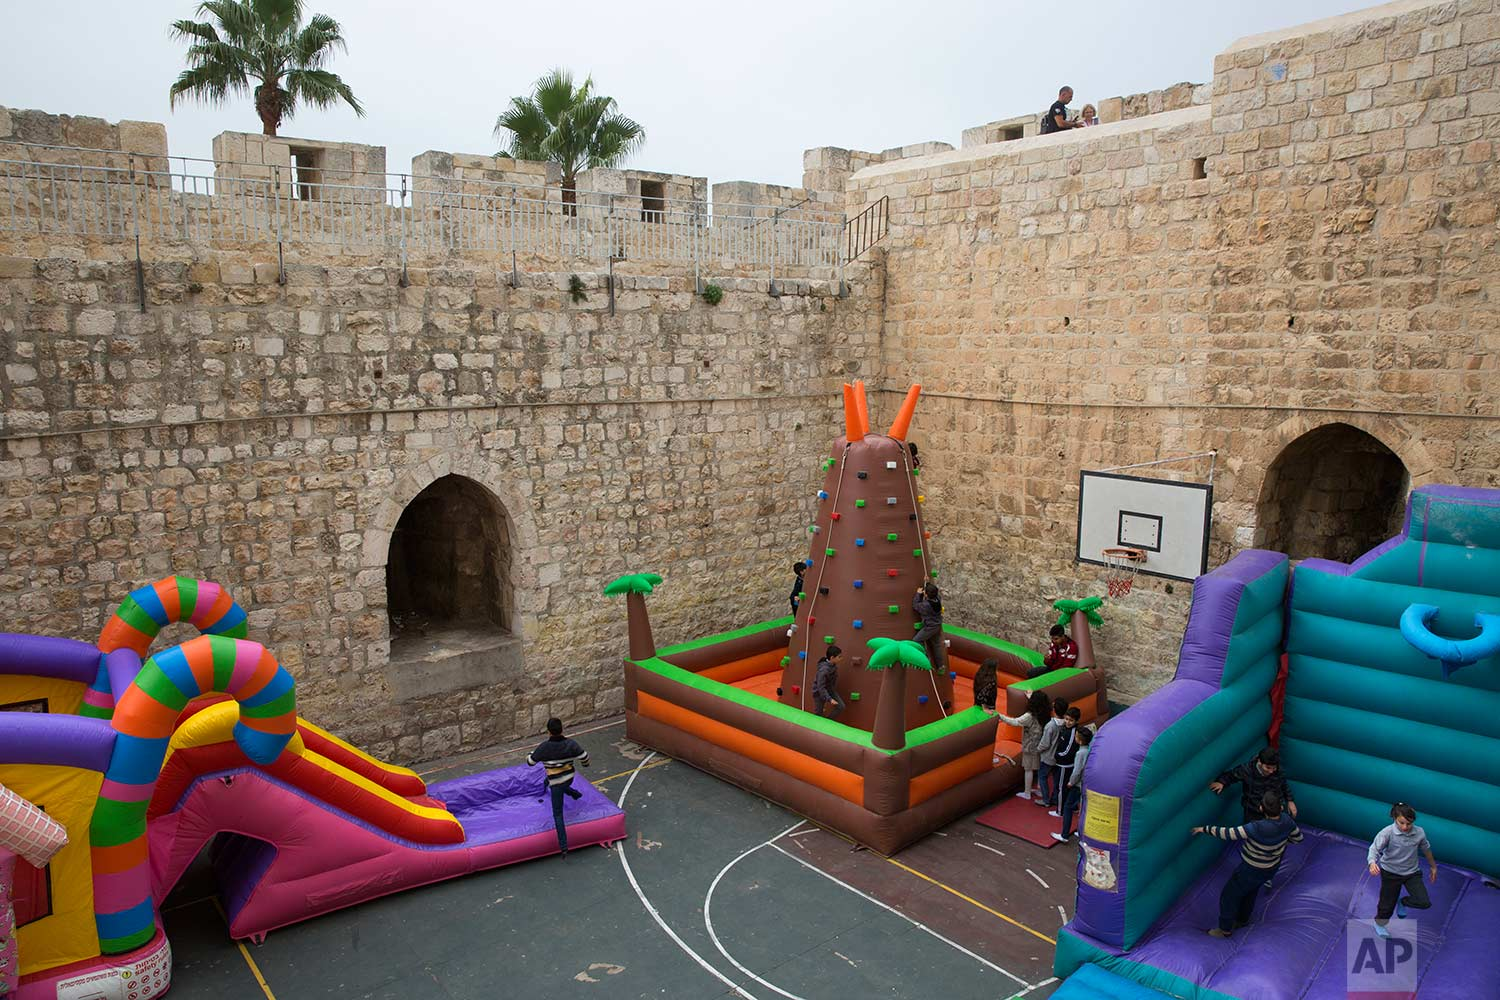 In this Thursday, Dec. 21, 2017 photo, Israeli Arab Christian school kids play on inflatables games in De La Salle school basketball yard surrounded by the Jerusalem's Old City walls next to the New Gate in Jerusalem Old City. (AP Photo/Oded Balilty)